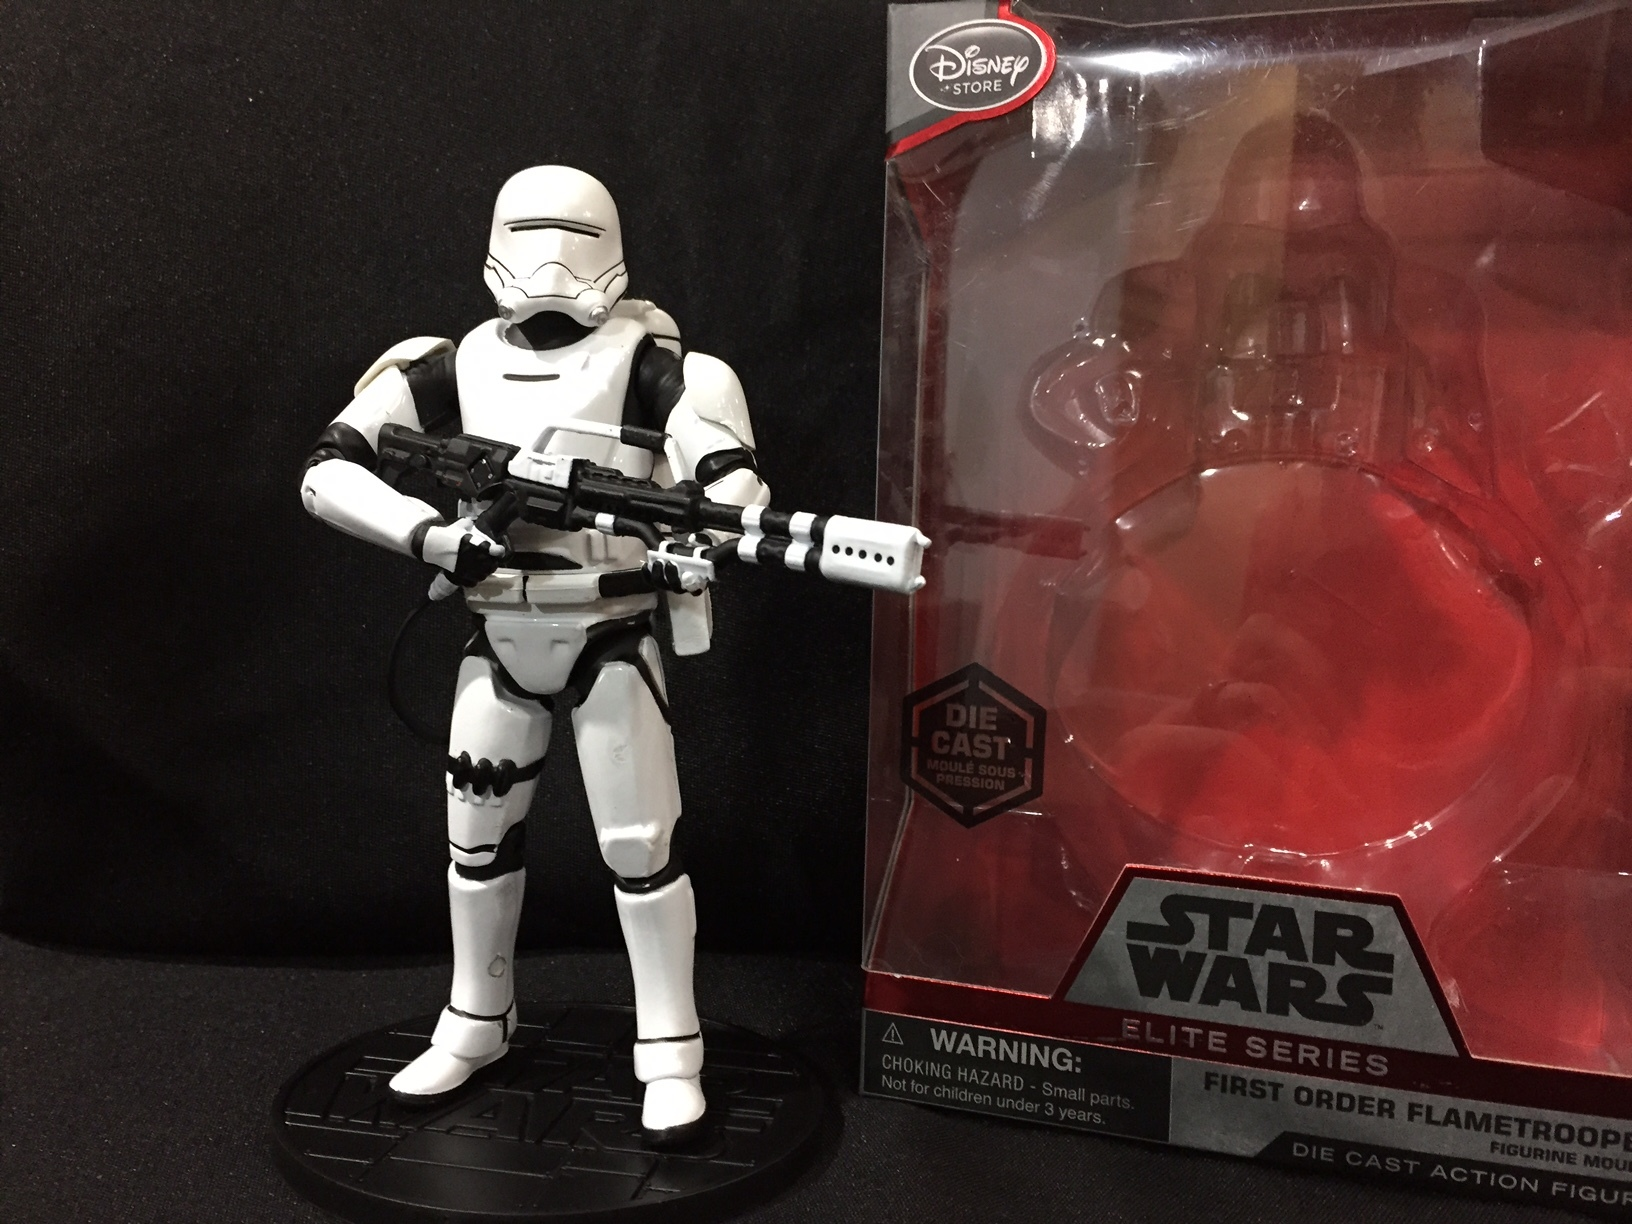 Opened Disney Elite series first order Flametrooper